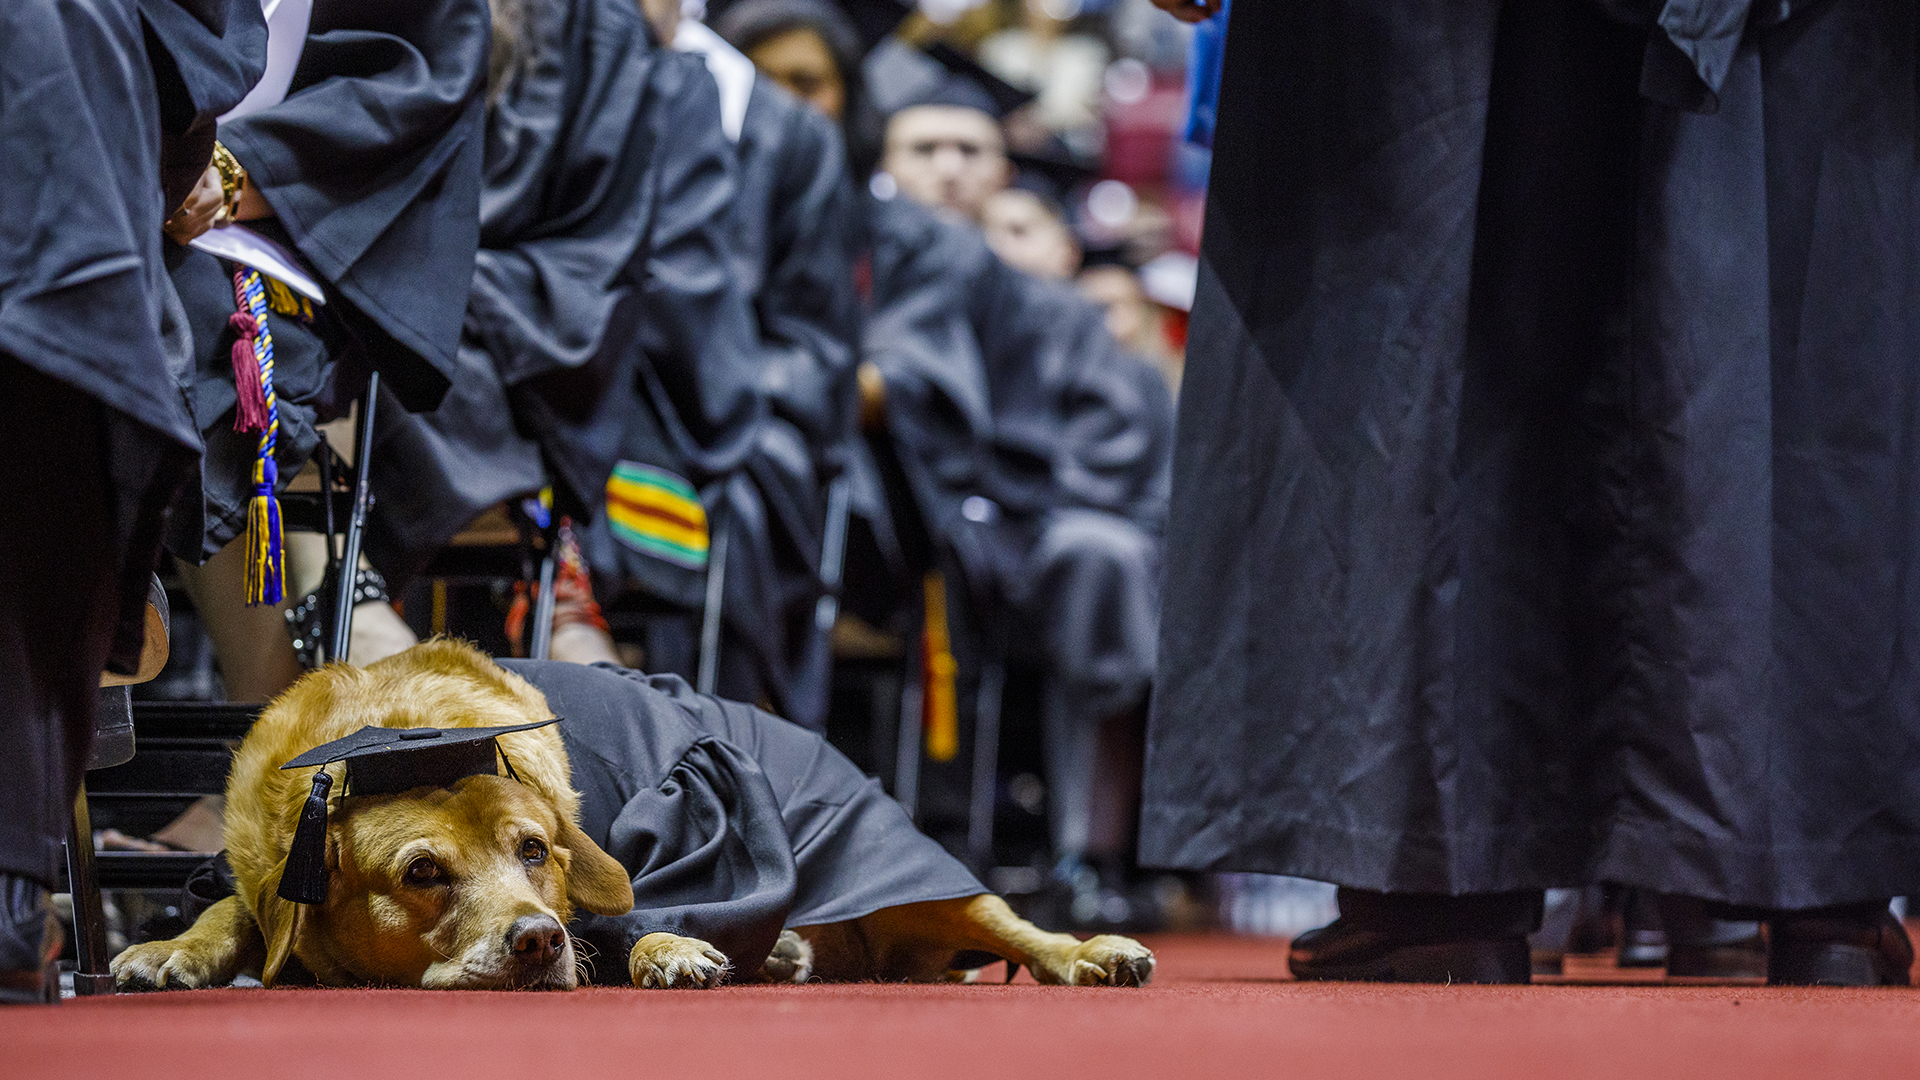 A service dog dressed in graduation robe and cap.